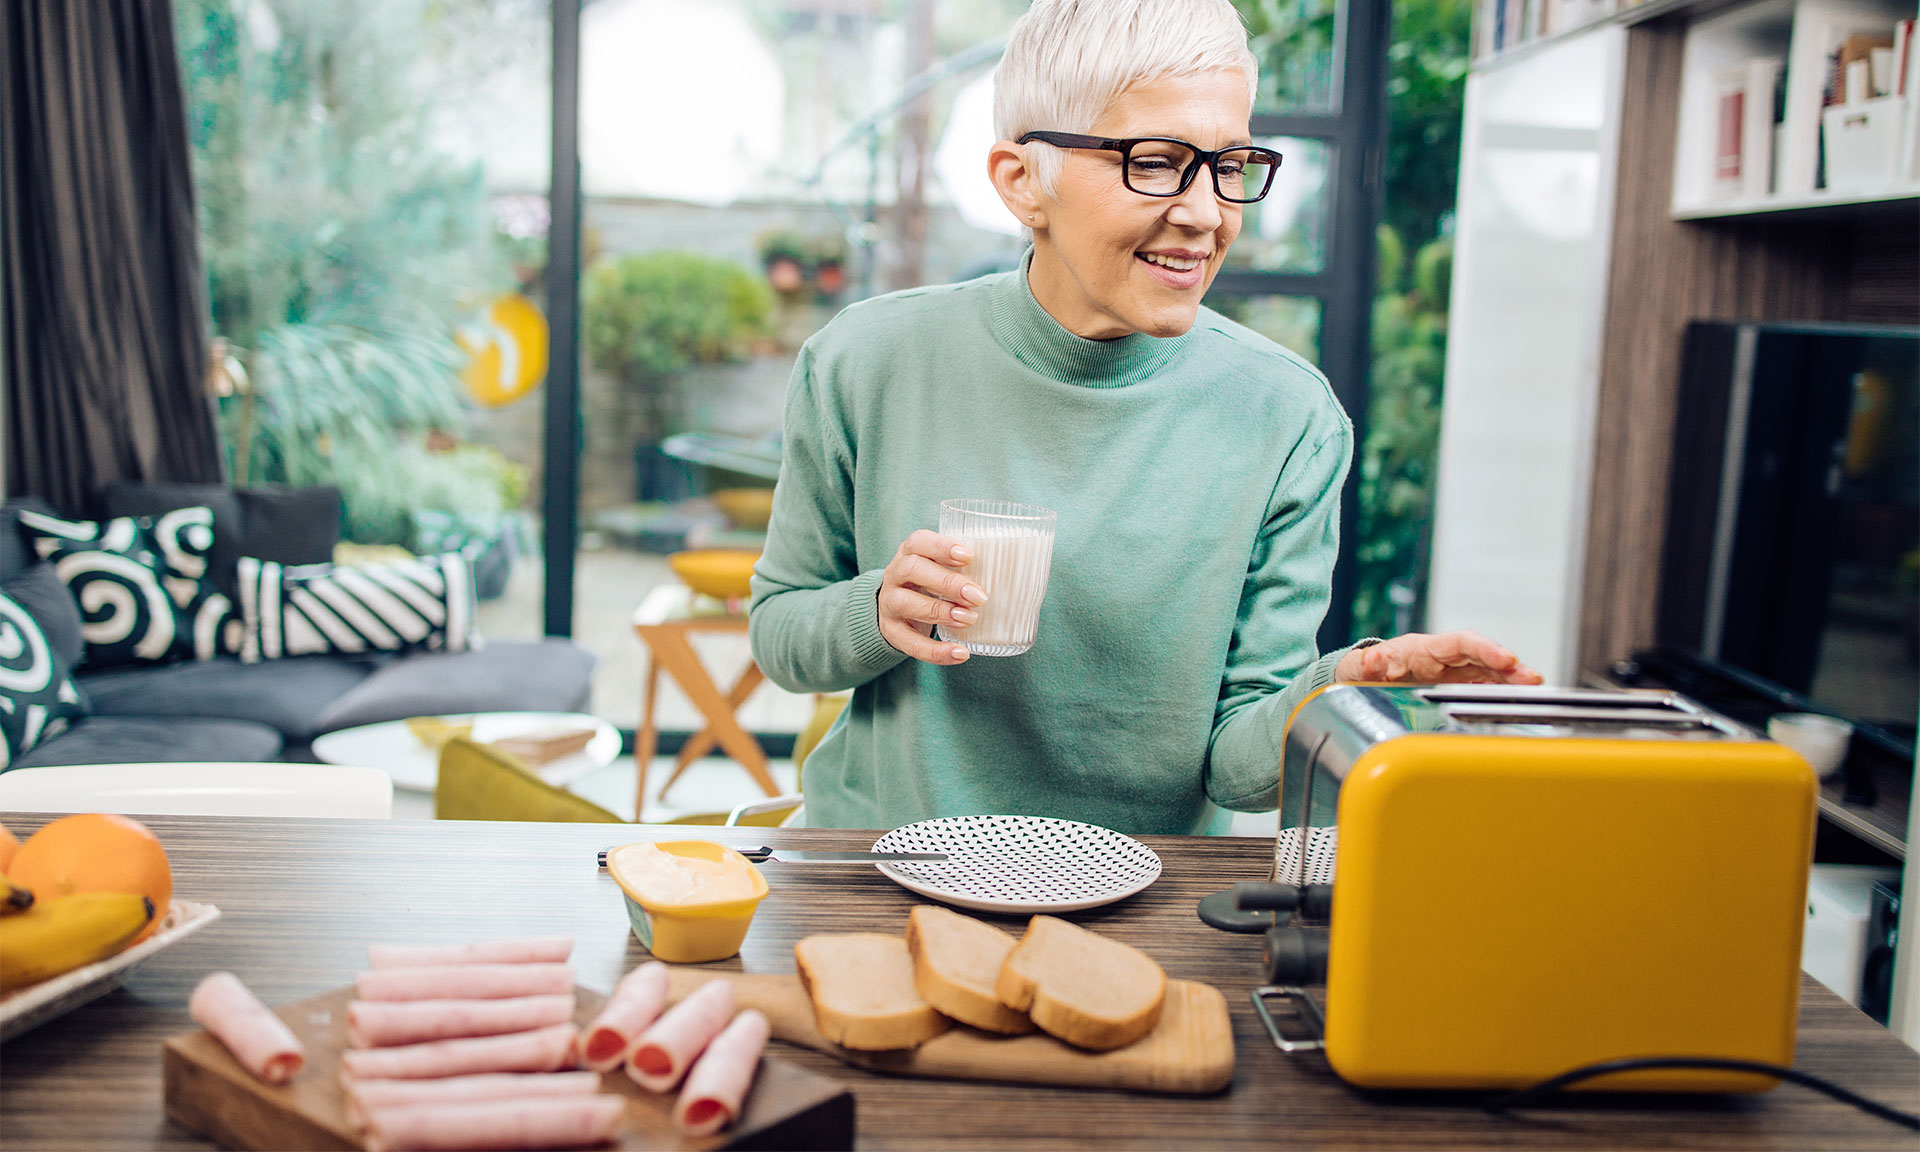 Woman using a toaster